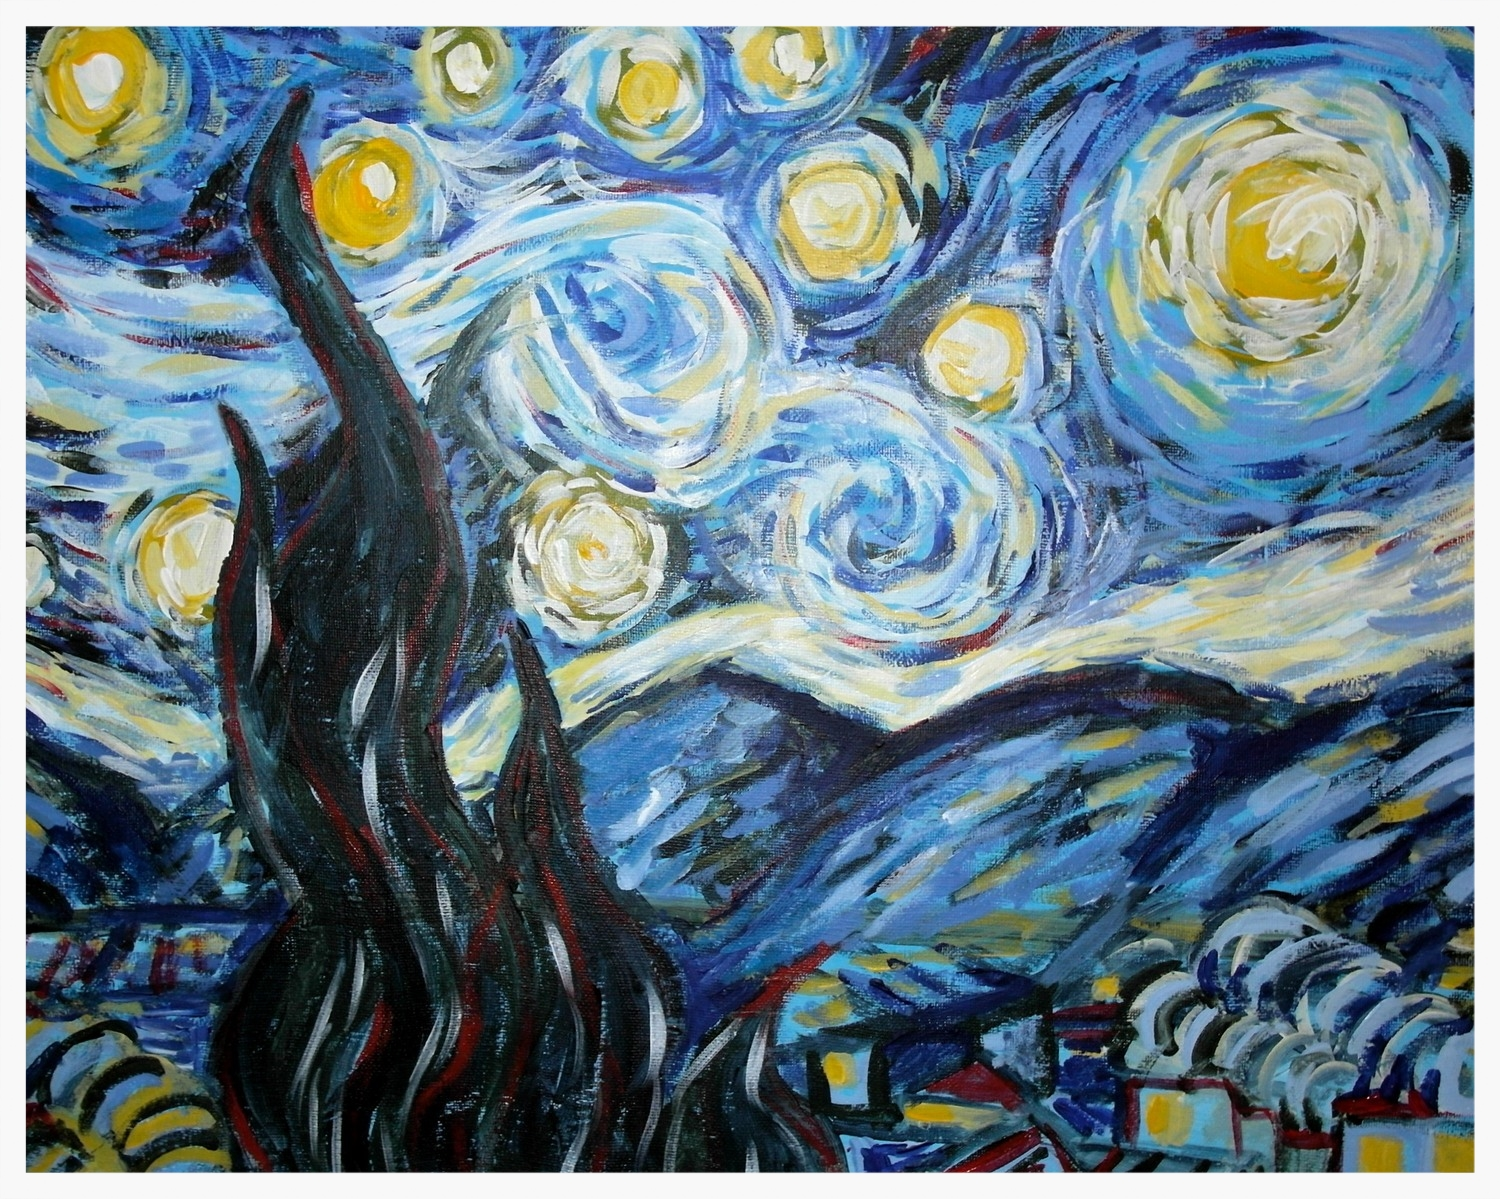 Imitation Van Gogh  Starry Night  that anyone can do! I can show you!